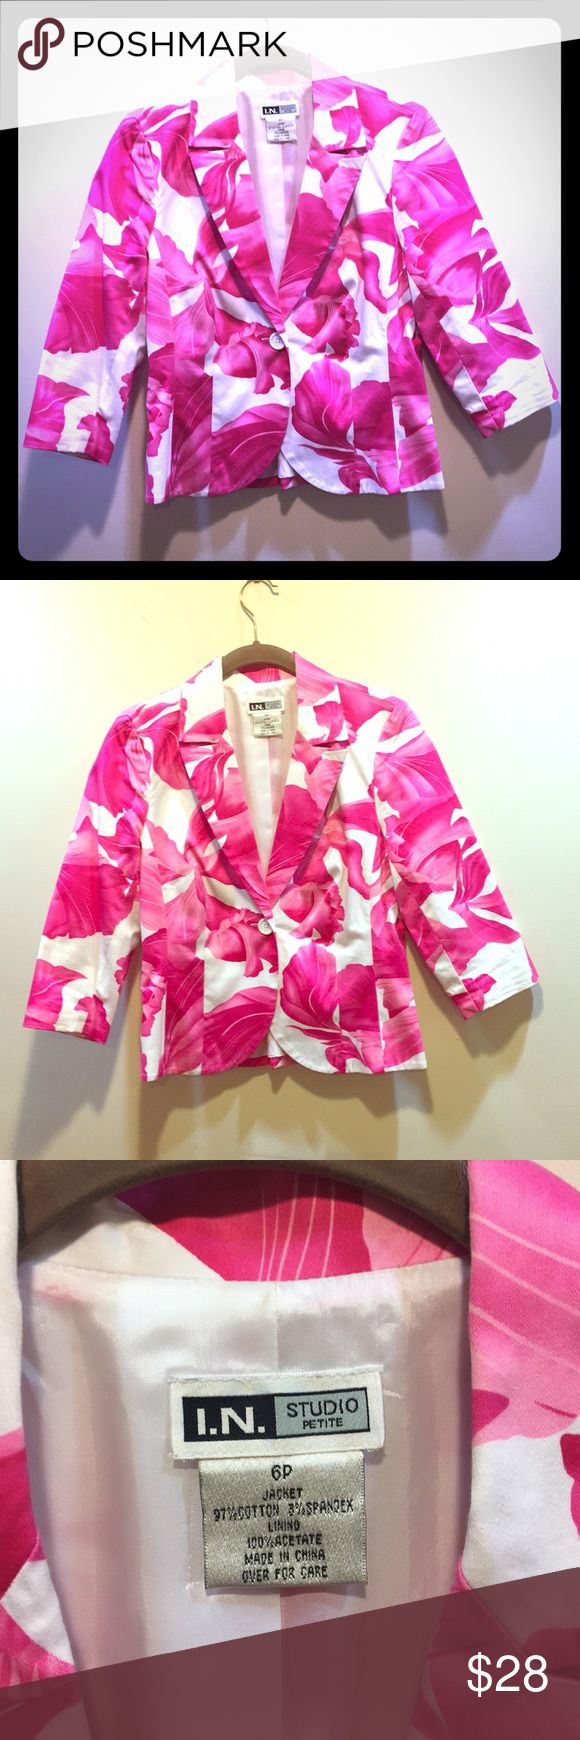 💥4.99 Ship 1HR💥Floral 3/4 Sleeve Cropped Blazer Classicly styled 3/4 sleeve one button blazer in a strikingly beautiful large pink and white tropical floral print. Jacket is a petite. I wore as a cropped jacket with jeans, dresses and skirts. I. N. Studio Jackets & Coats Blazers